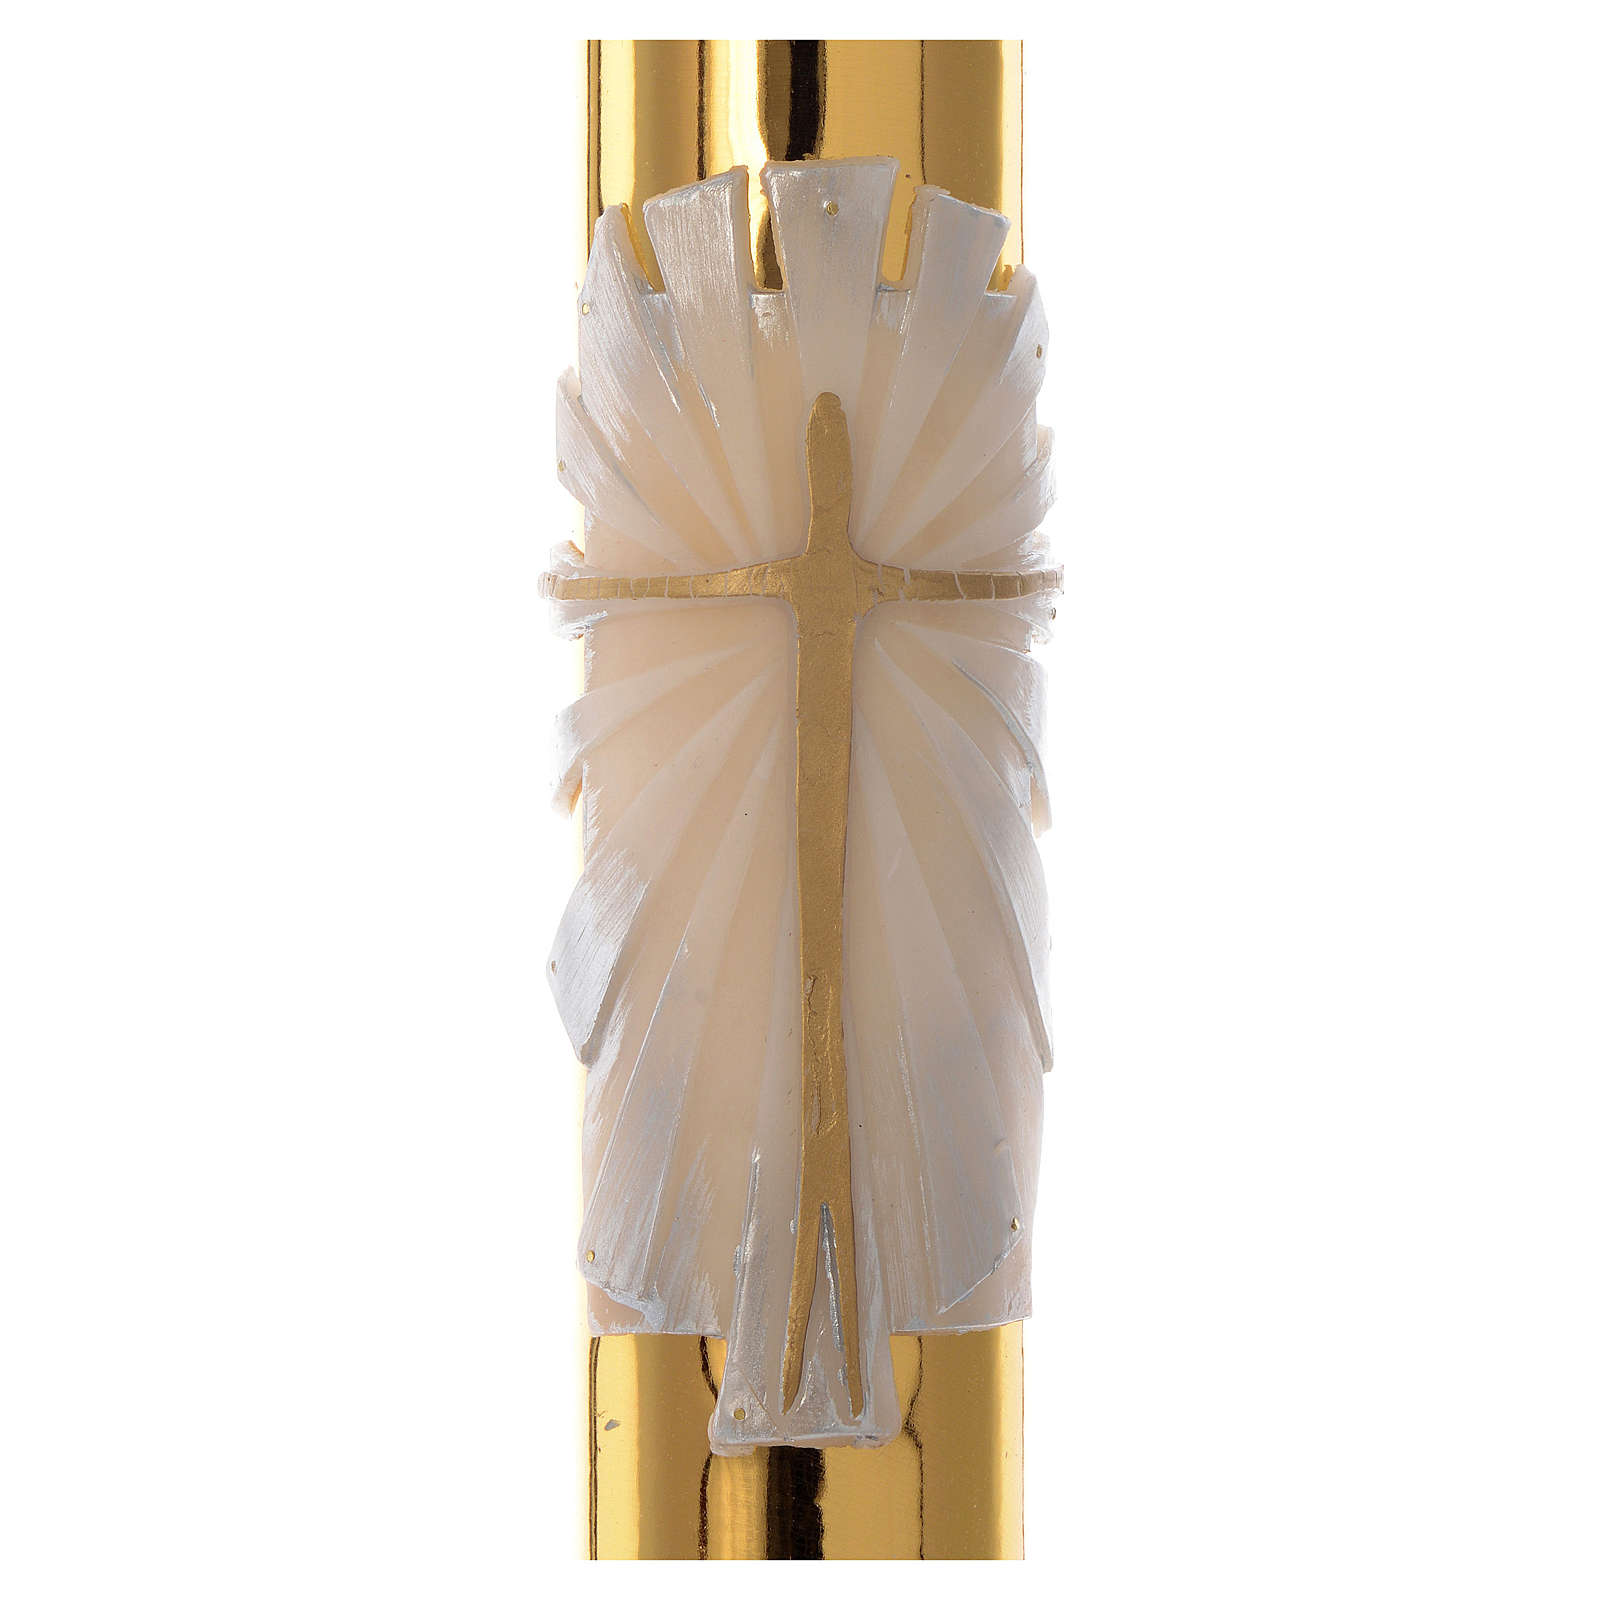 Paschal candle in white wax with golden cross 8x120cm 3